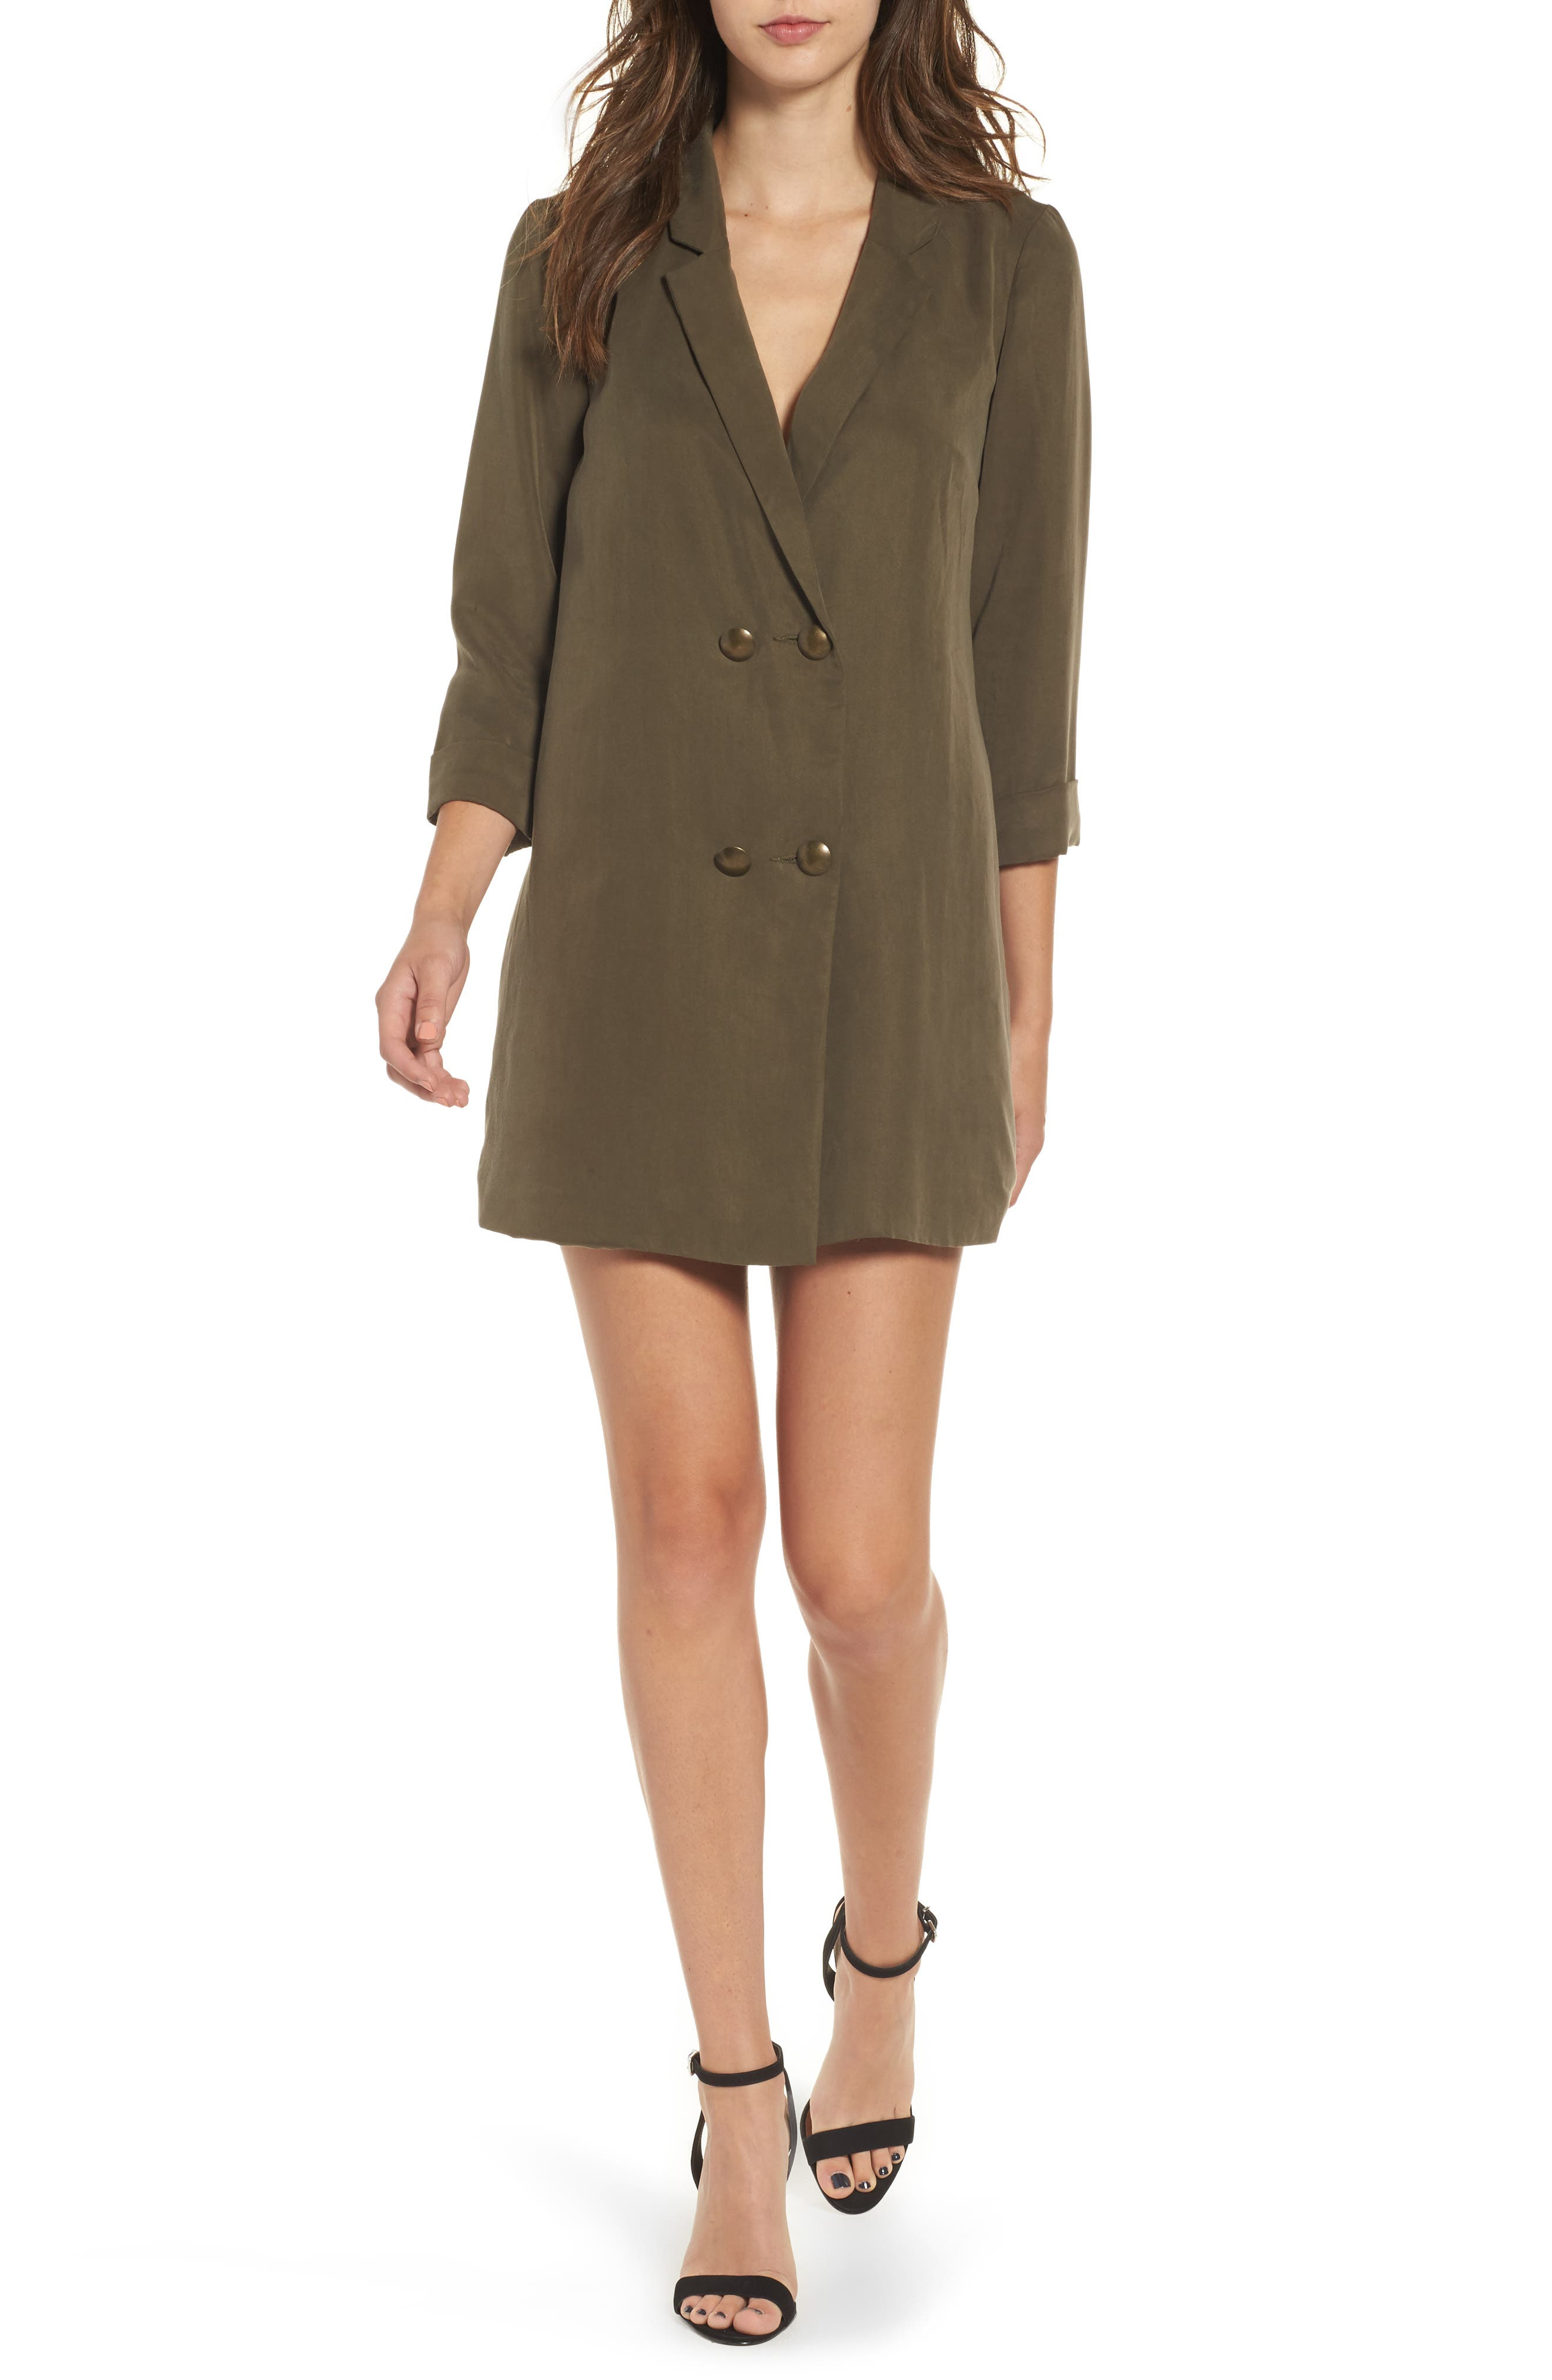 Lovers + Friends Double Breasted Shirtdress